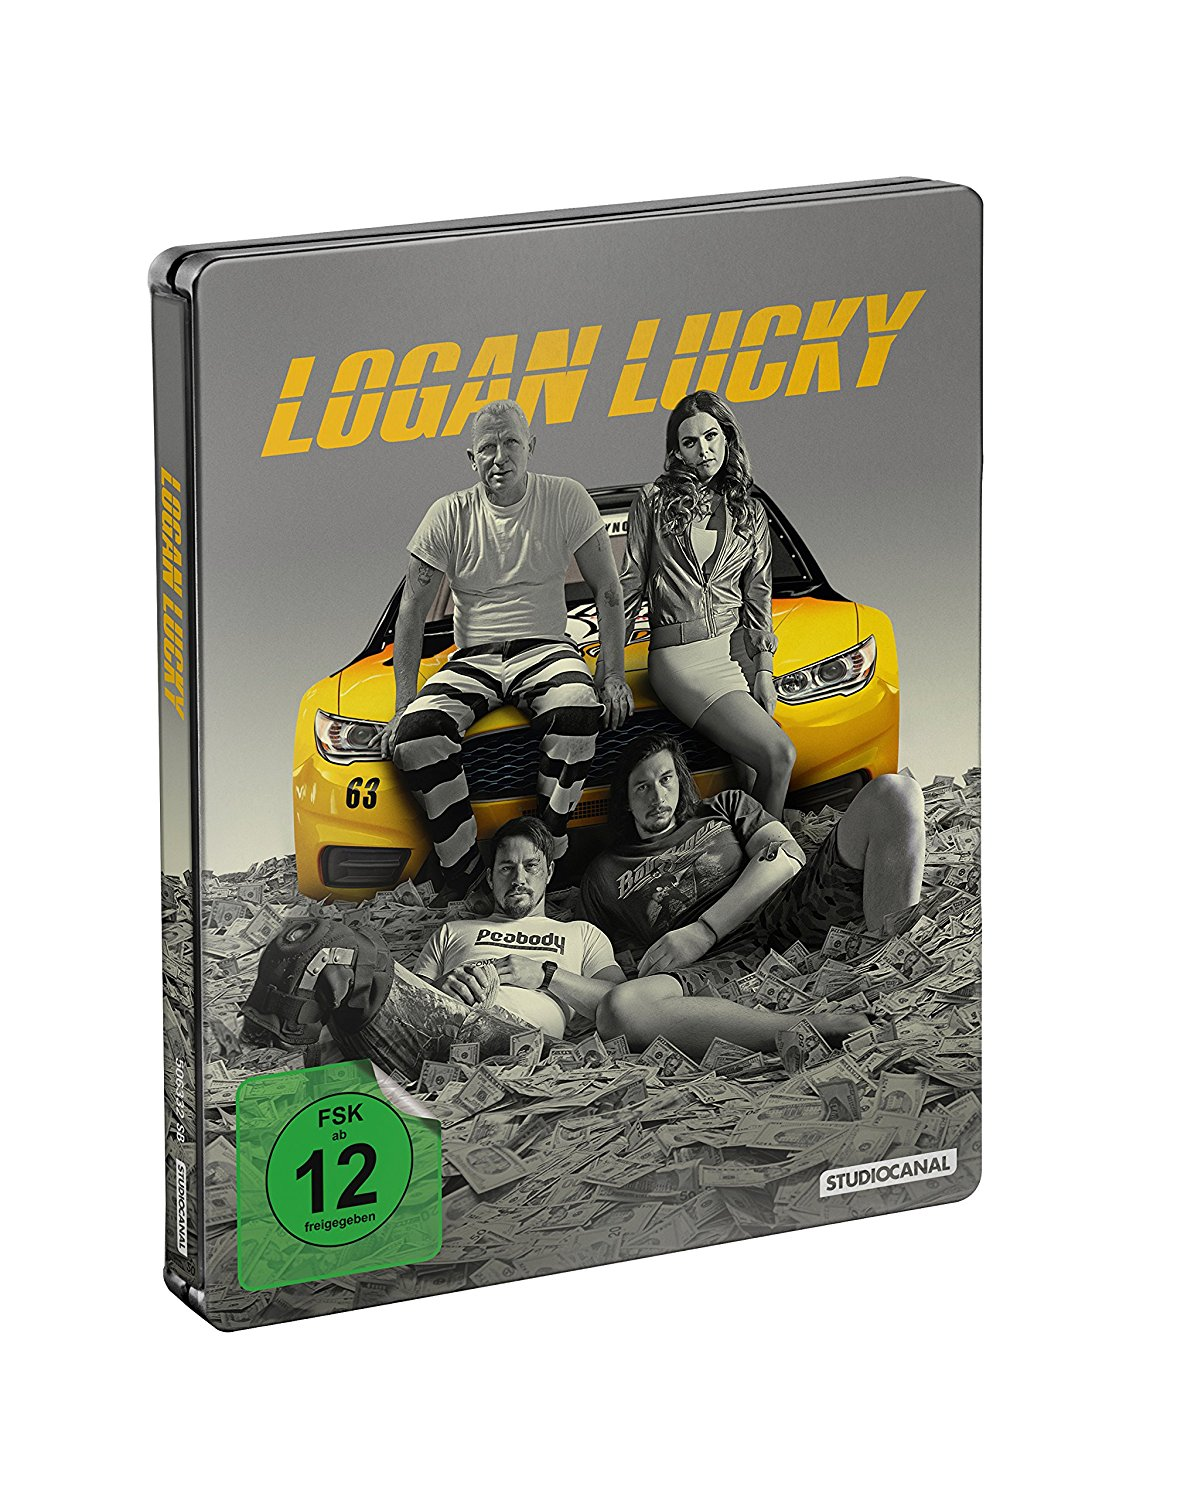 Logan Lucky Blu Ray Steelbook Germany Hi Def Ninja Pop Culture Movie Collectible Community